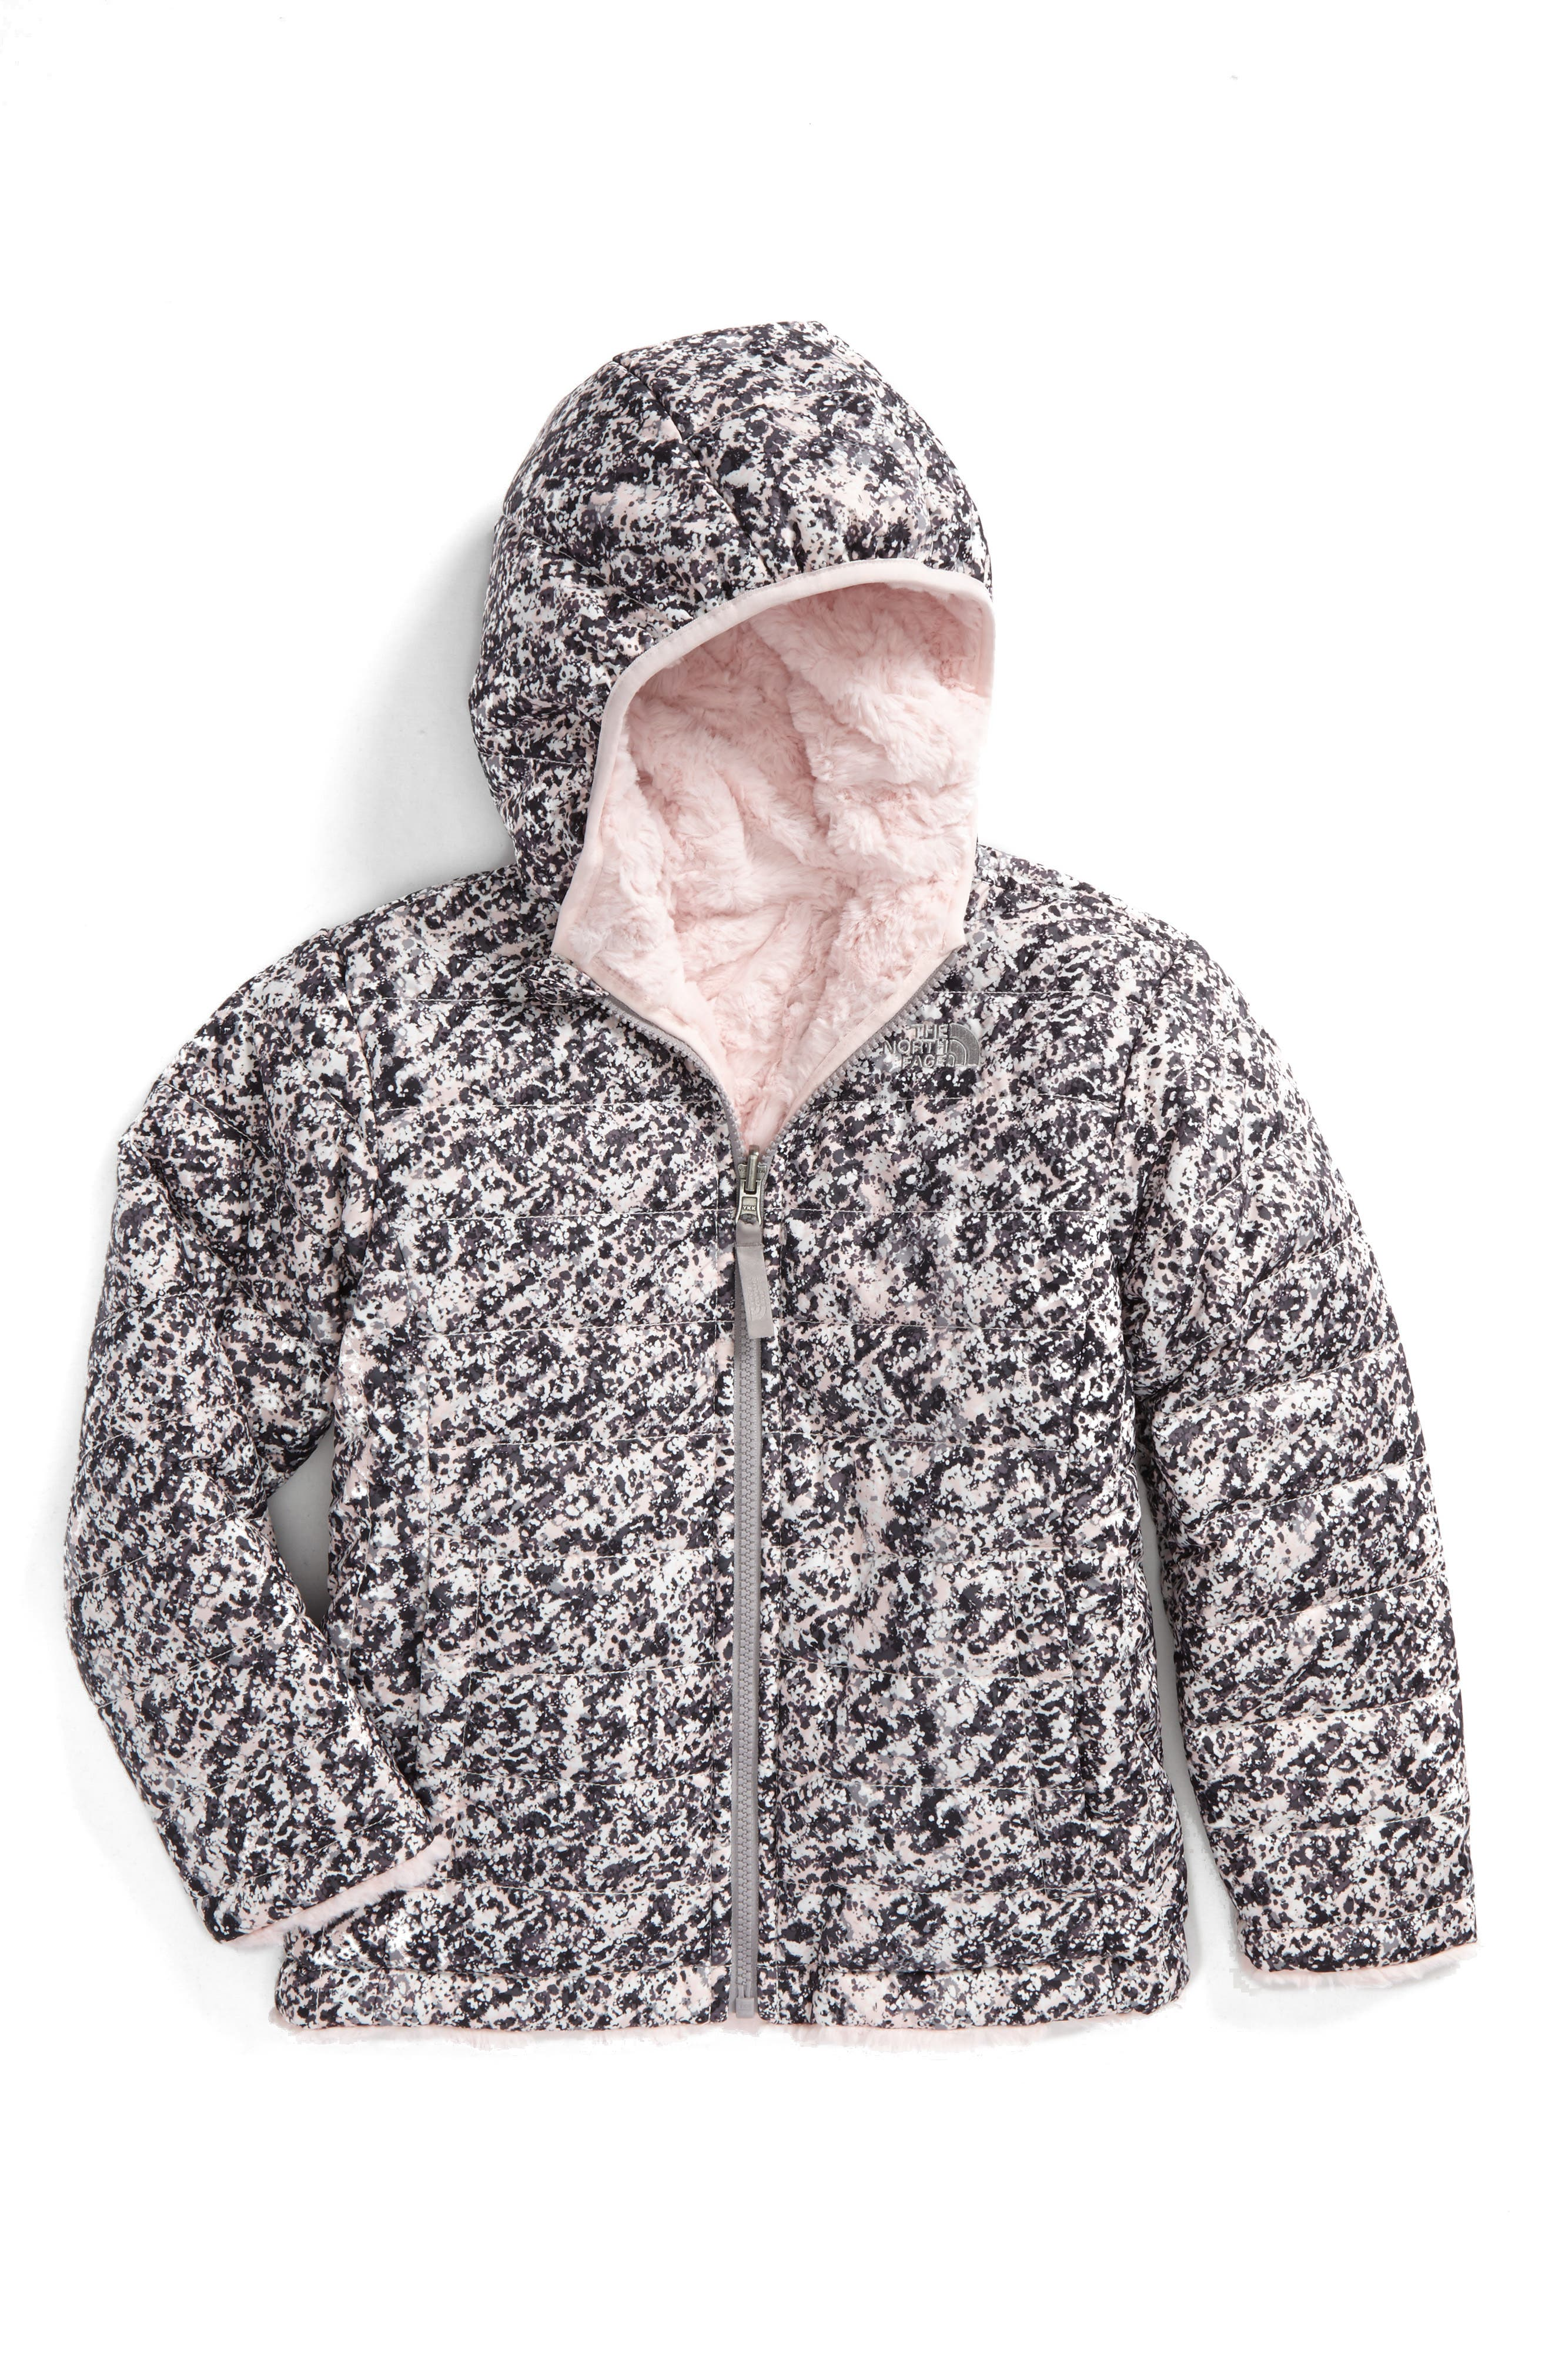 Mossbud Swirl Reversible Water Repellent Jacket,                         Main,                         color, Purdy Pink Sponge Print